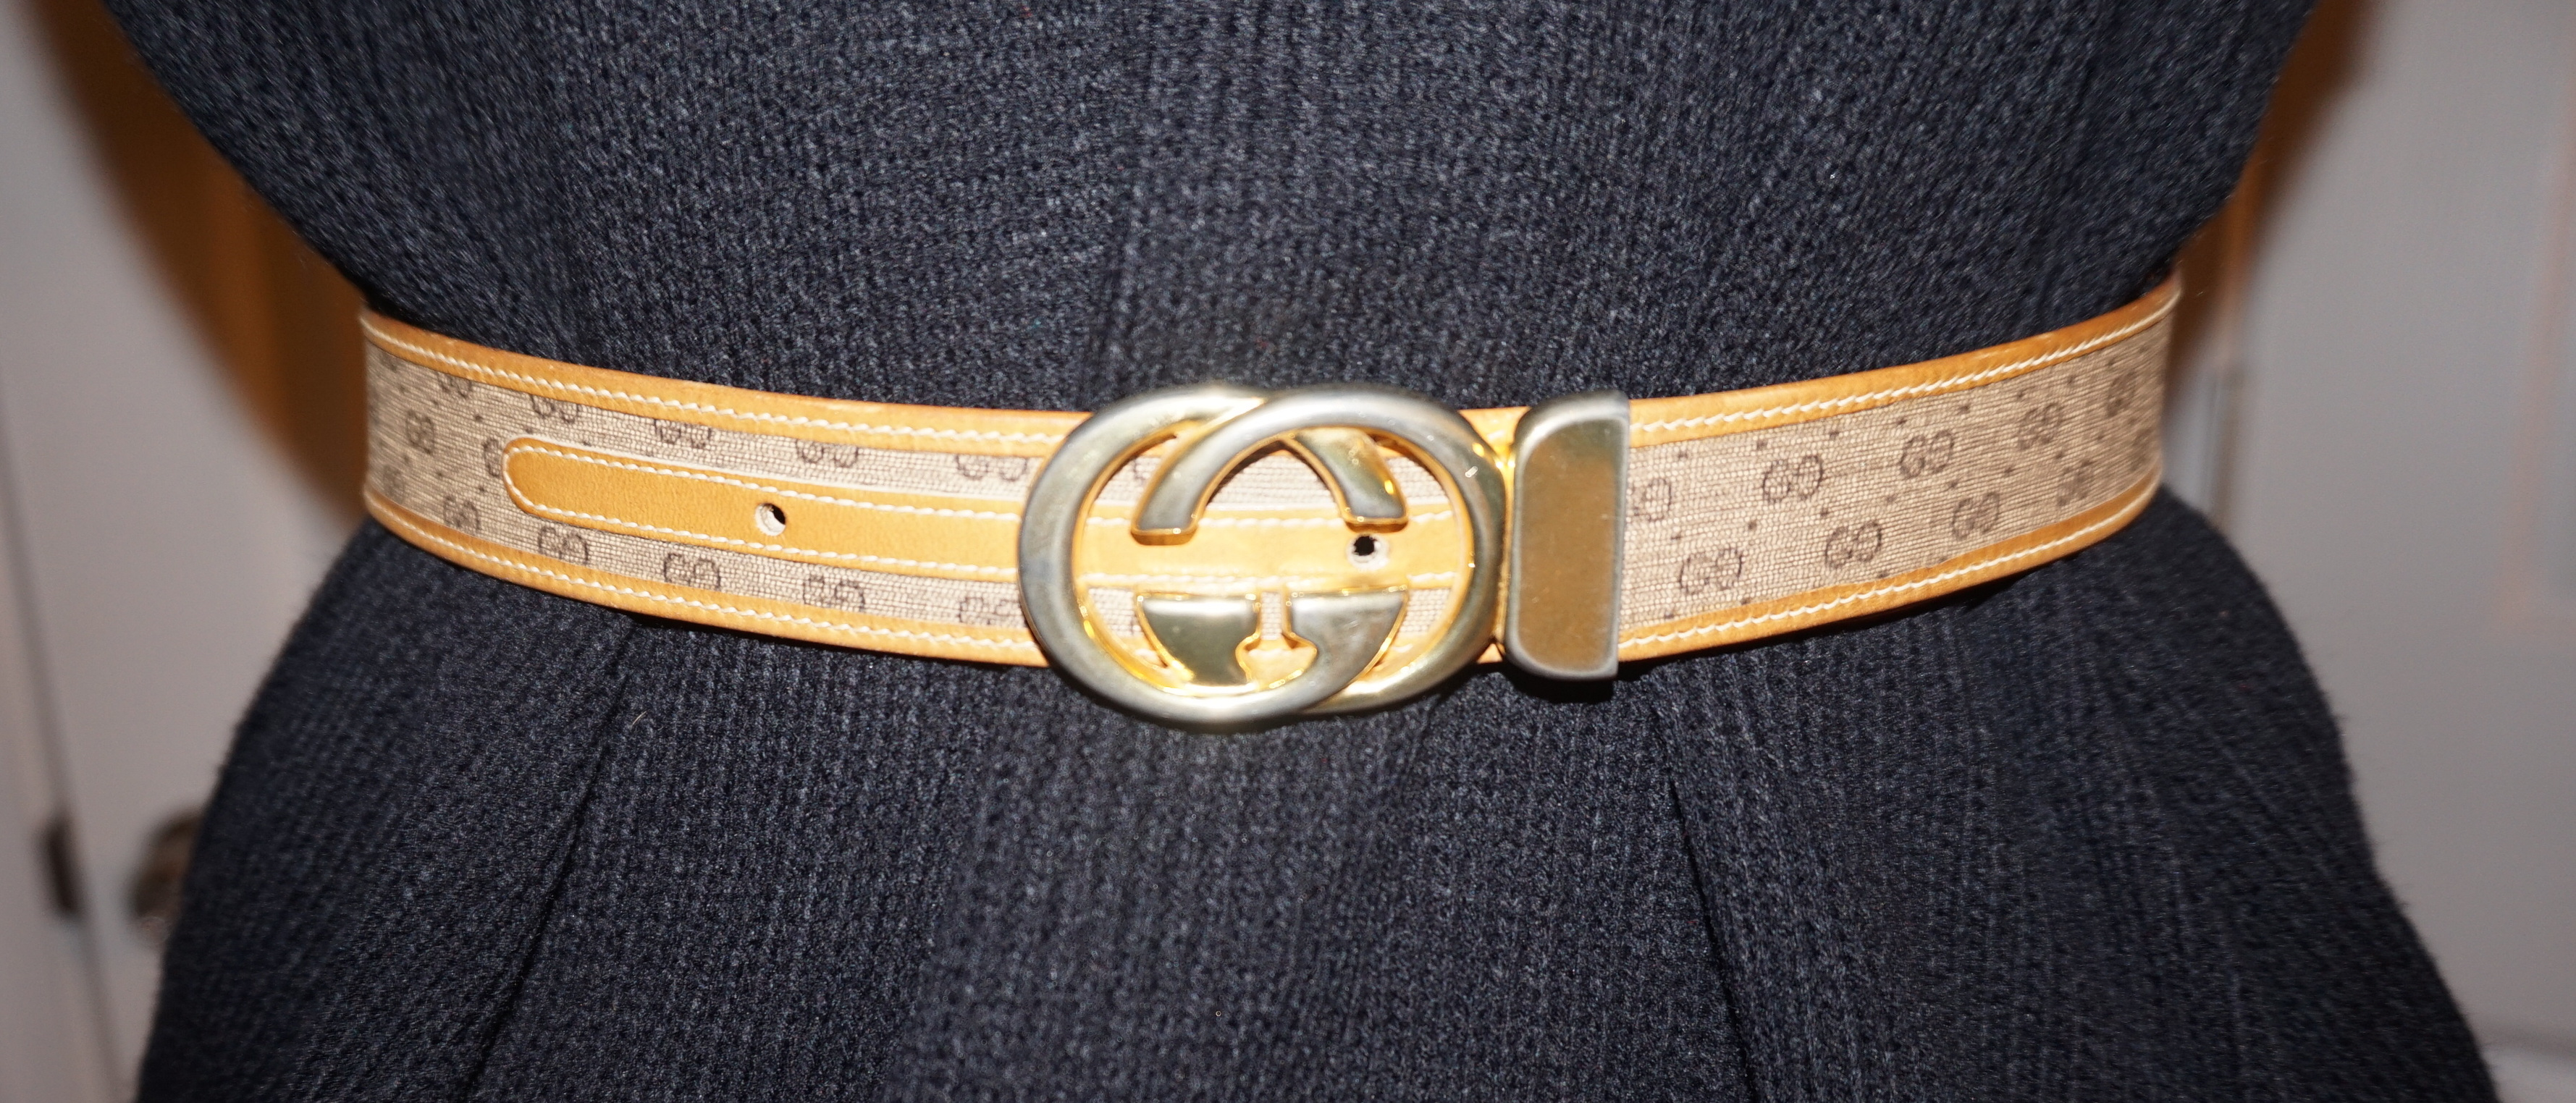 d1f03fbca Vintage Authentic Gucci Belt Size 28 or Small on Storenvy